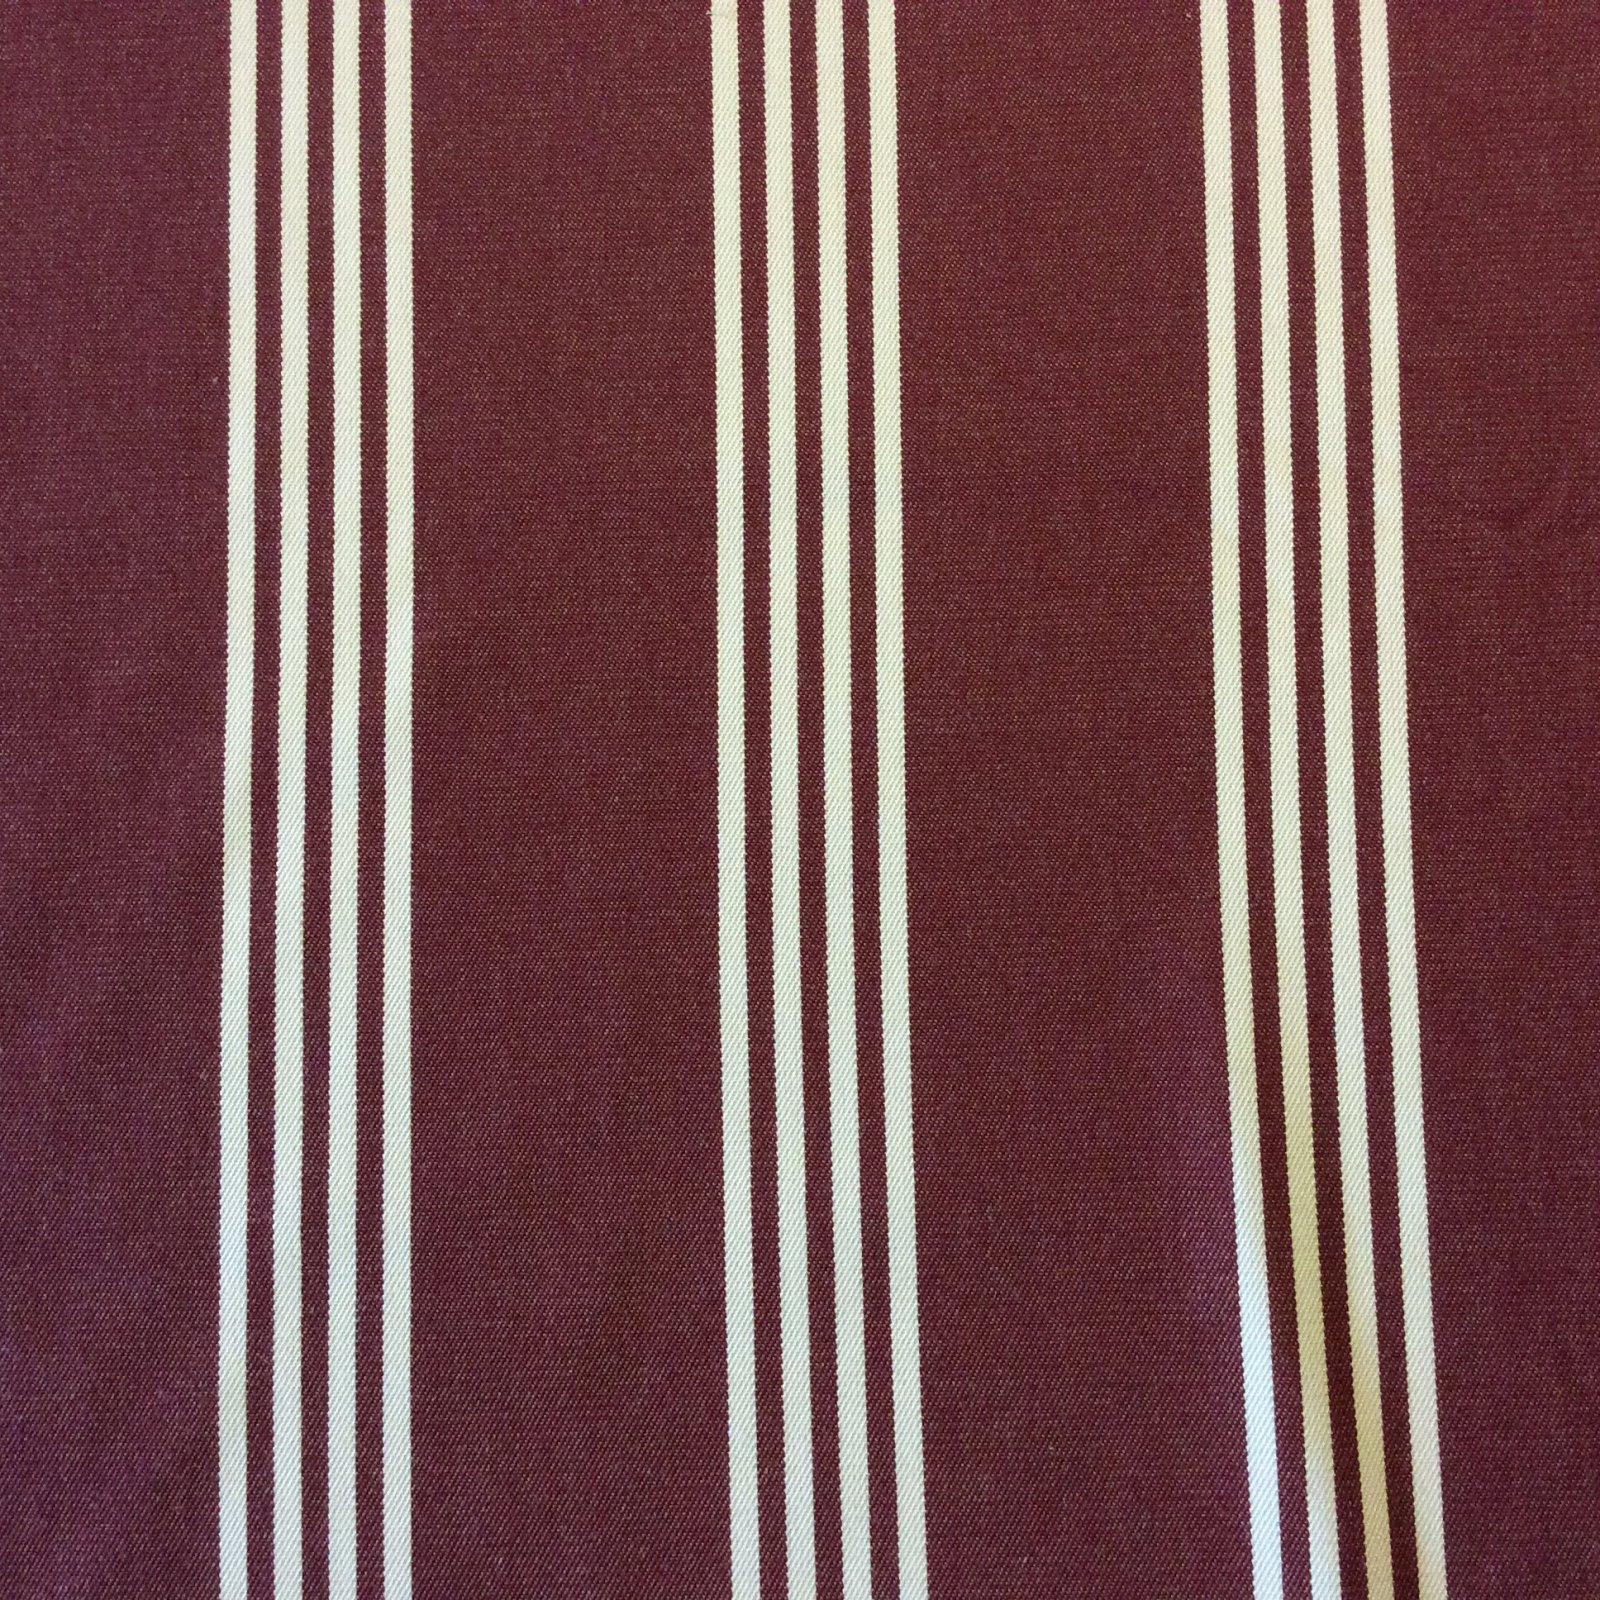 Classic Awning Stripe Ralph Lauren Burgundy & White Striped Geo Patio Awning Indoor Outdoor Home Dec Fabric S567